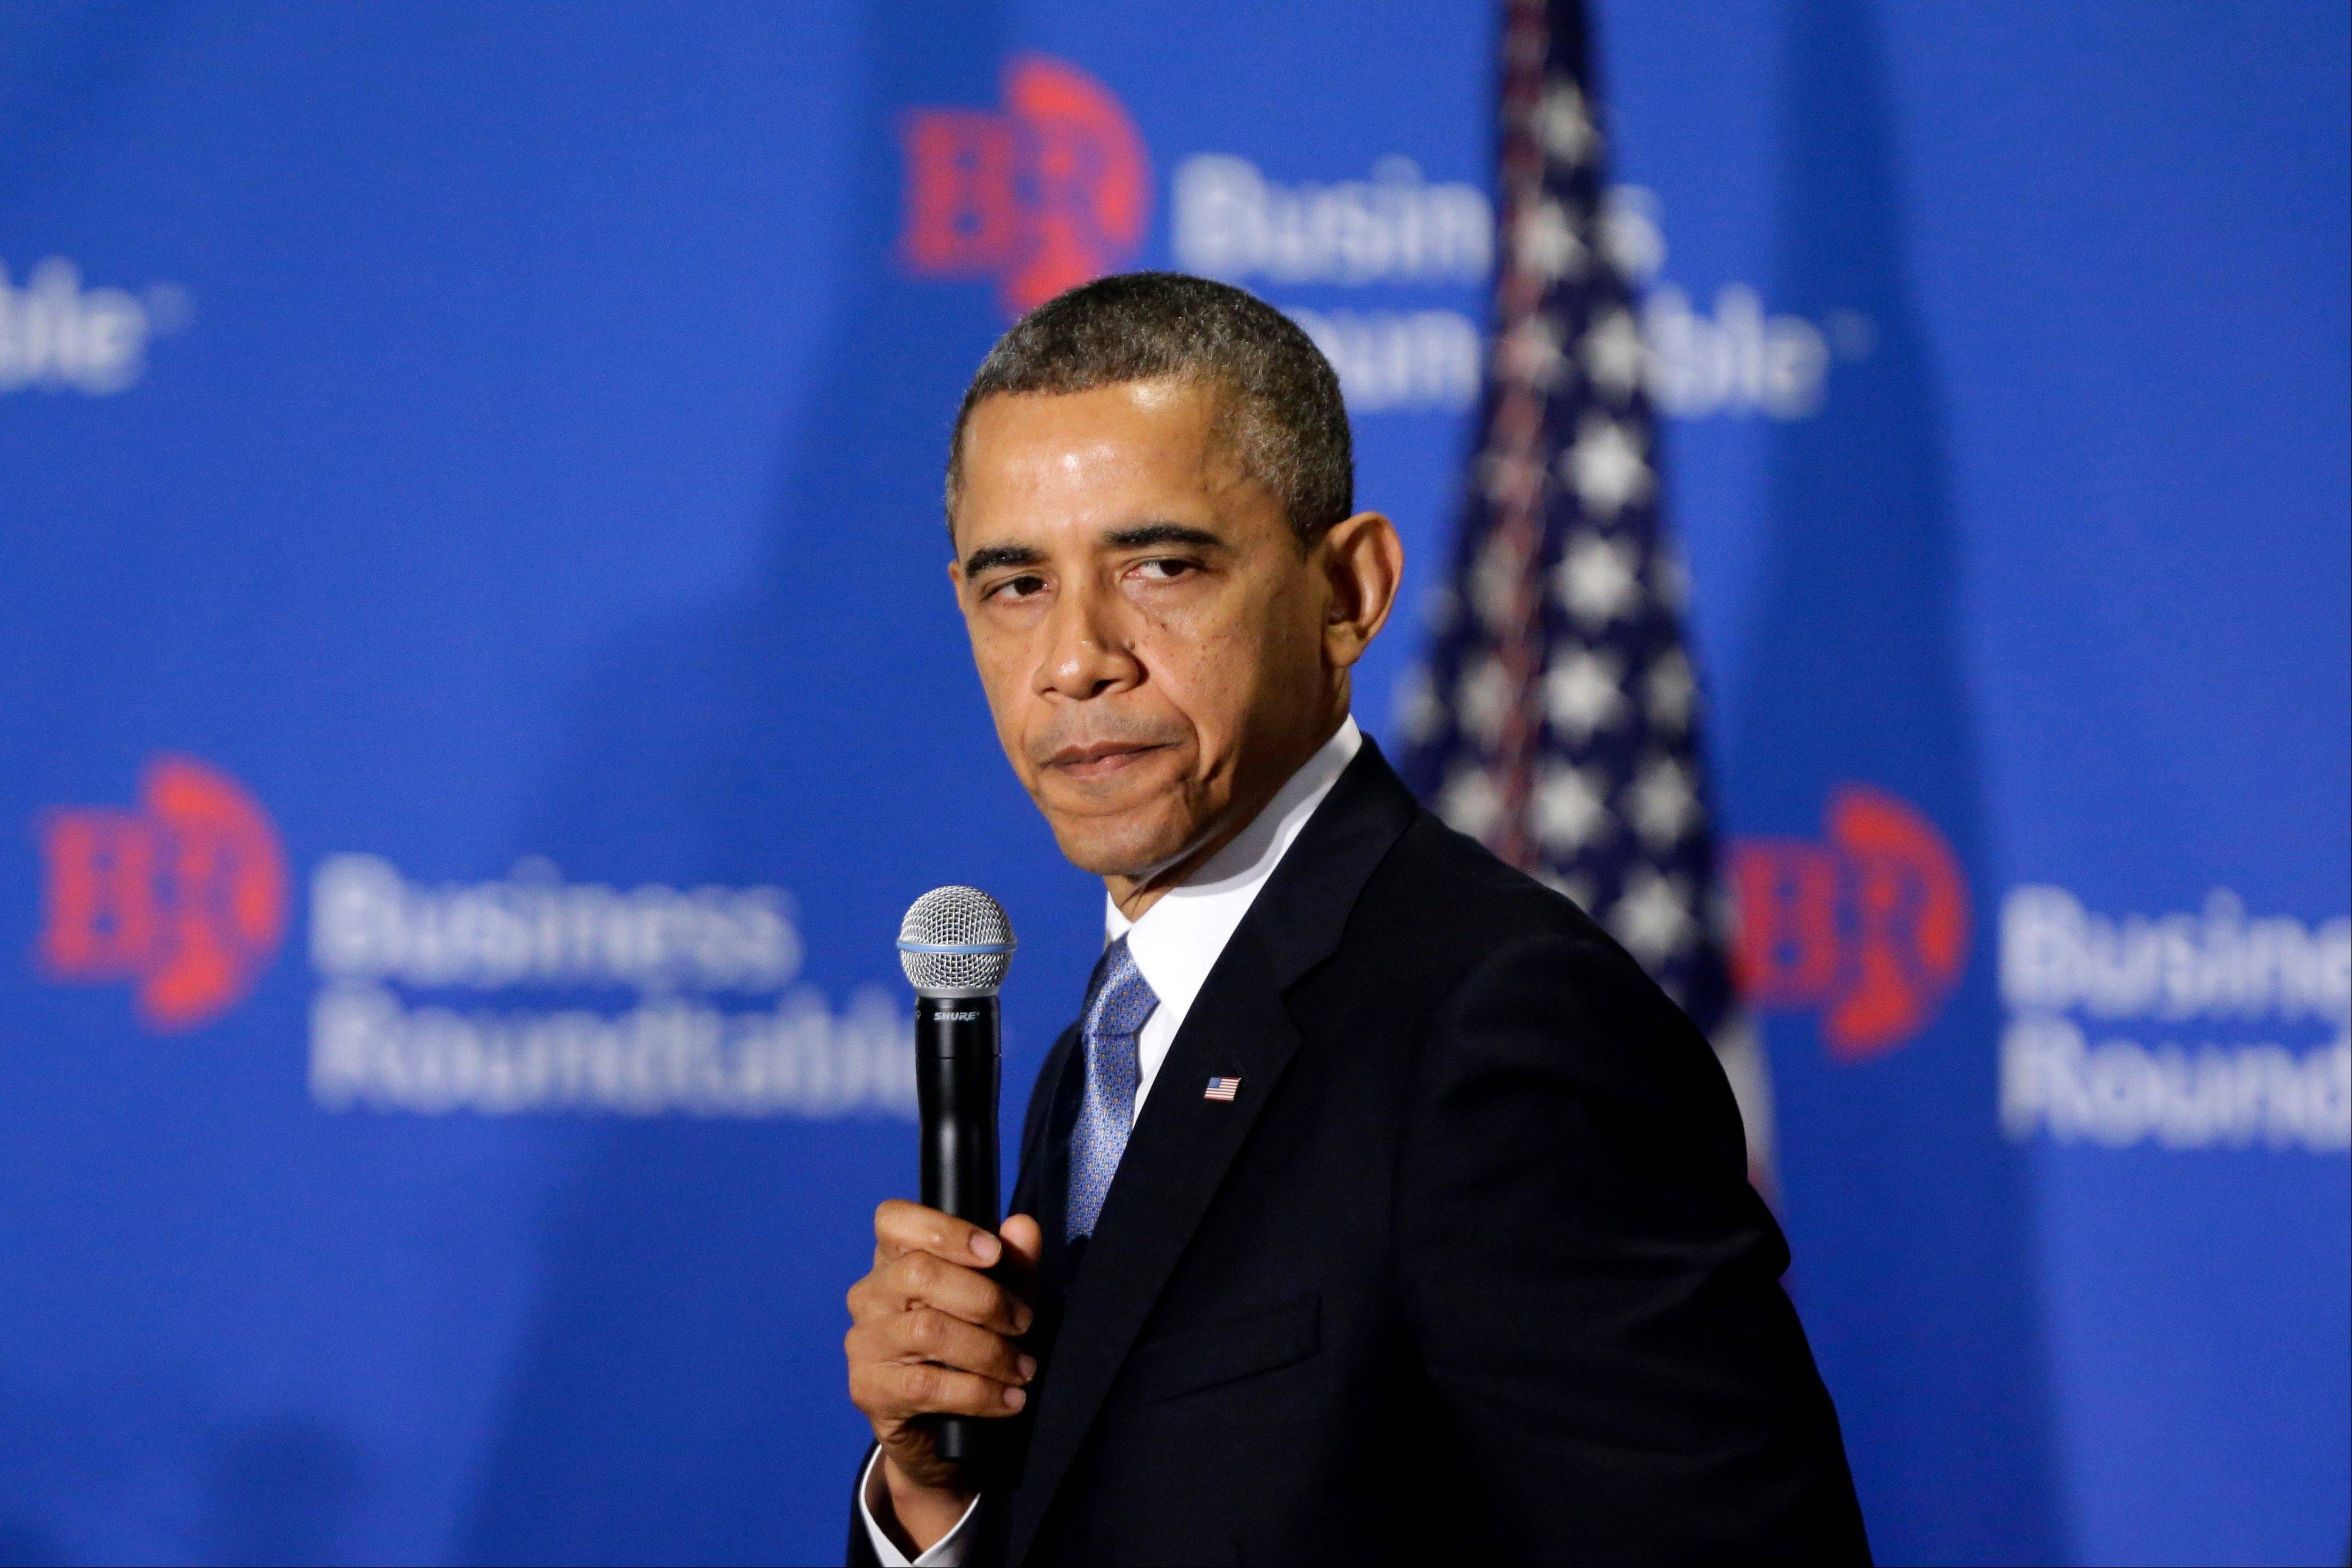 President Barack Obama pauses as he speaks about the fiscal cliff at the Business Roundtable, an association of chief executive officers, in Washington, Wednesday, Dec. 5, 2012. The president warned Republicans not to create another fight over the nation�s debt ceiling, telling business leaders it�s �not a game that I will play.�